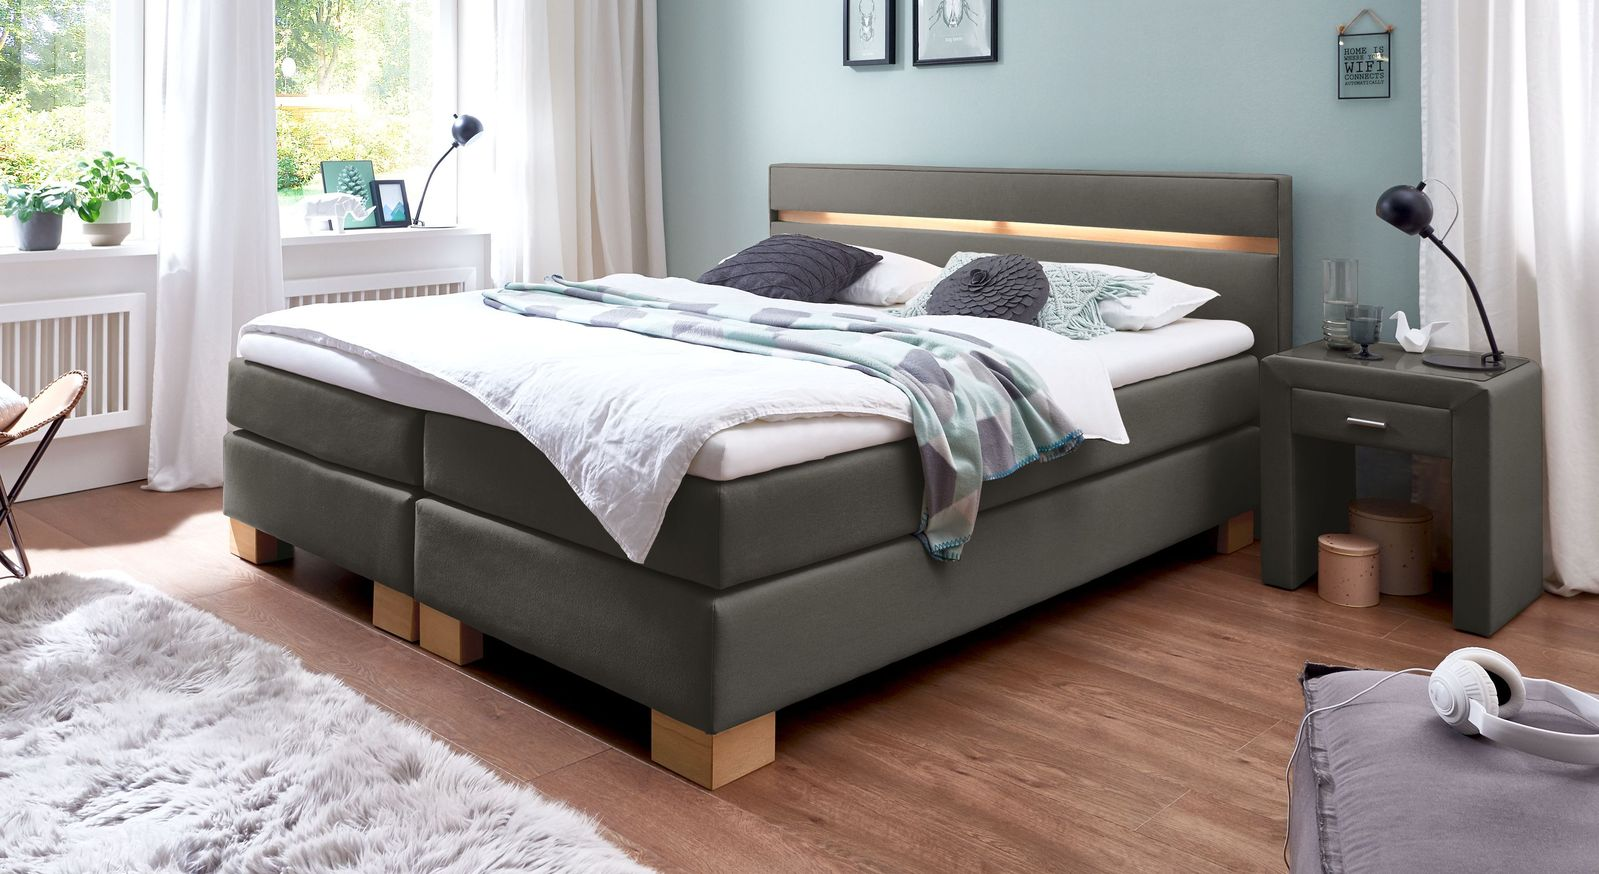 53 cm hohes Boxspringbett Vincenzo aus Webstoff in Anthrazit